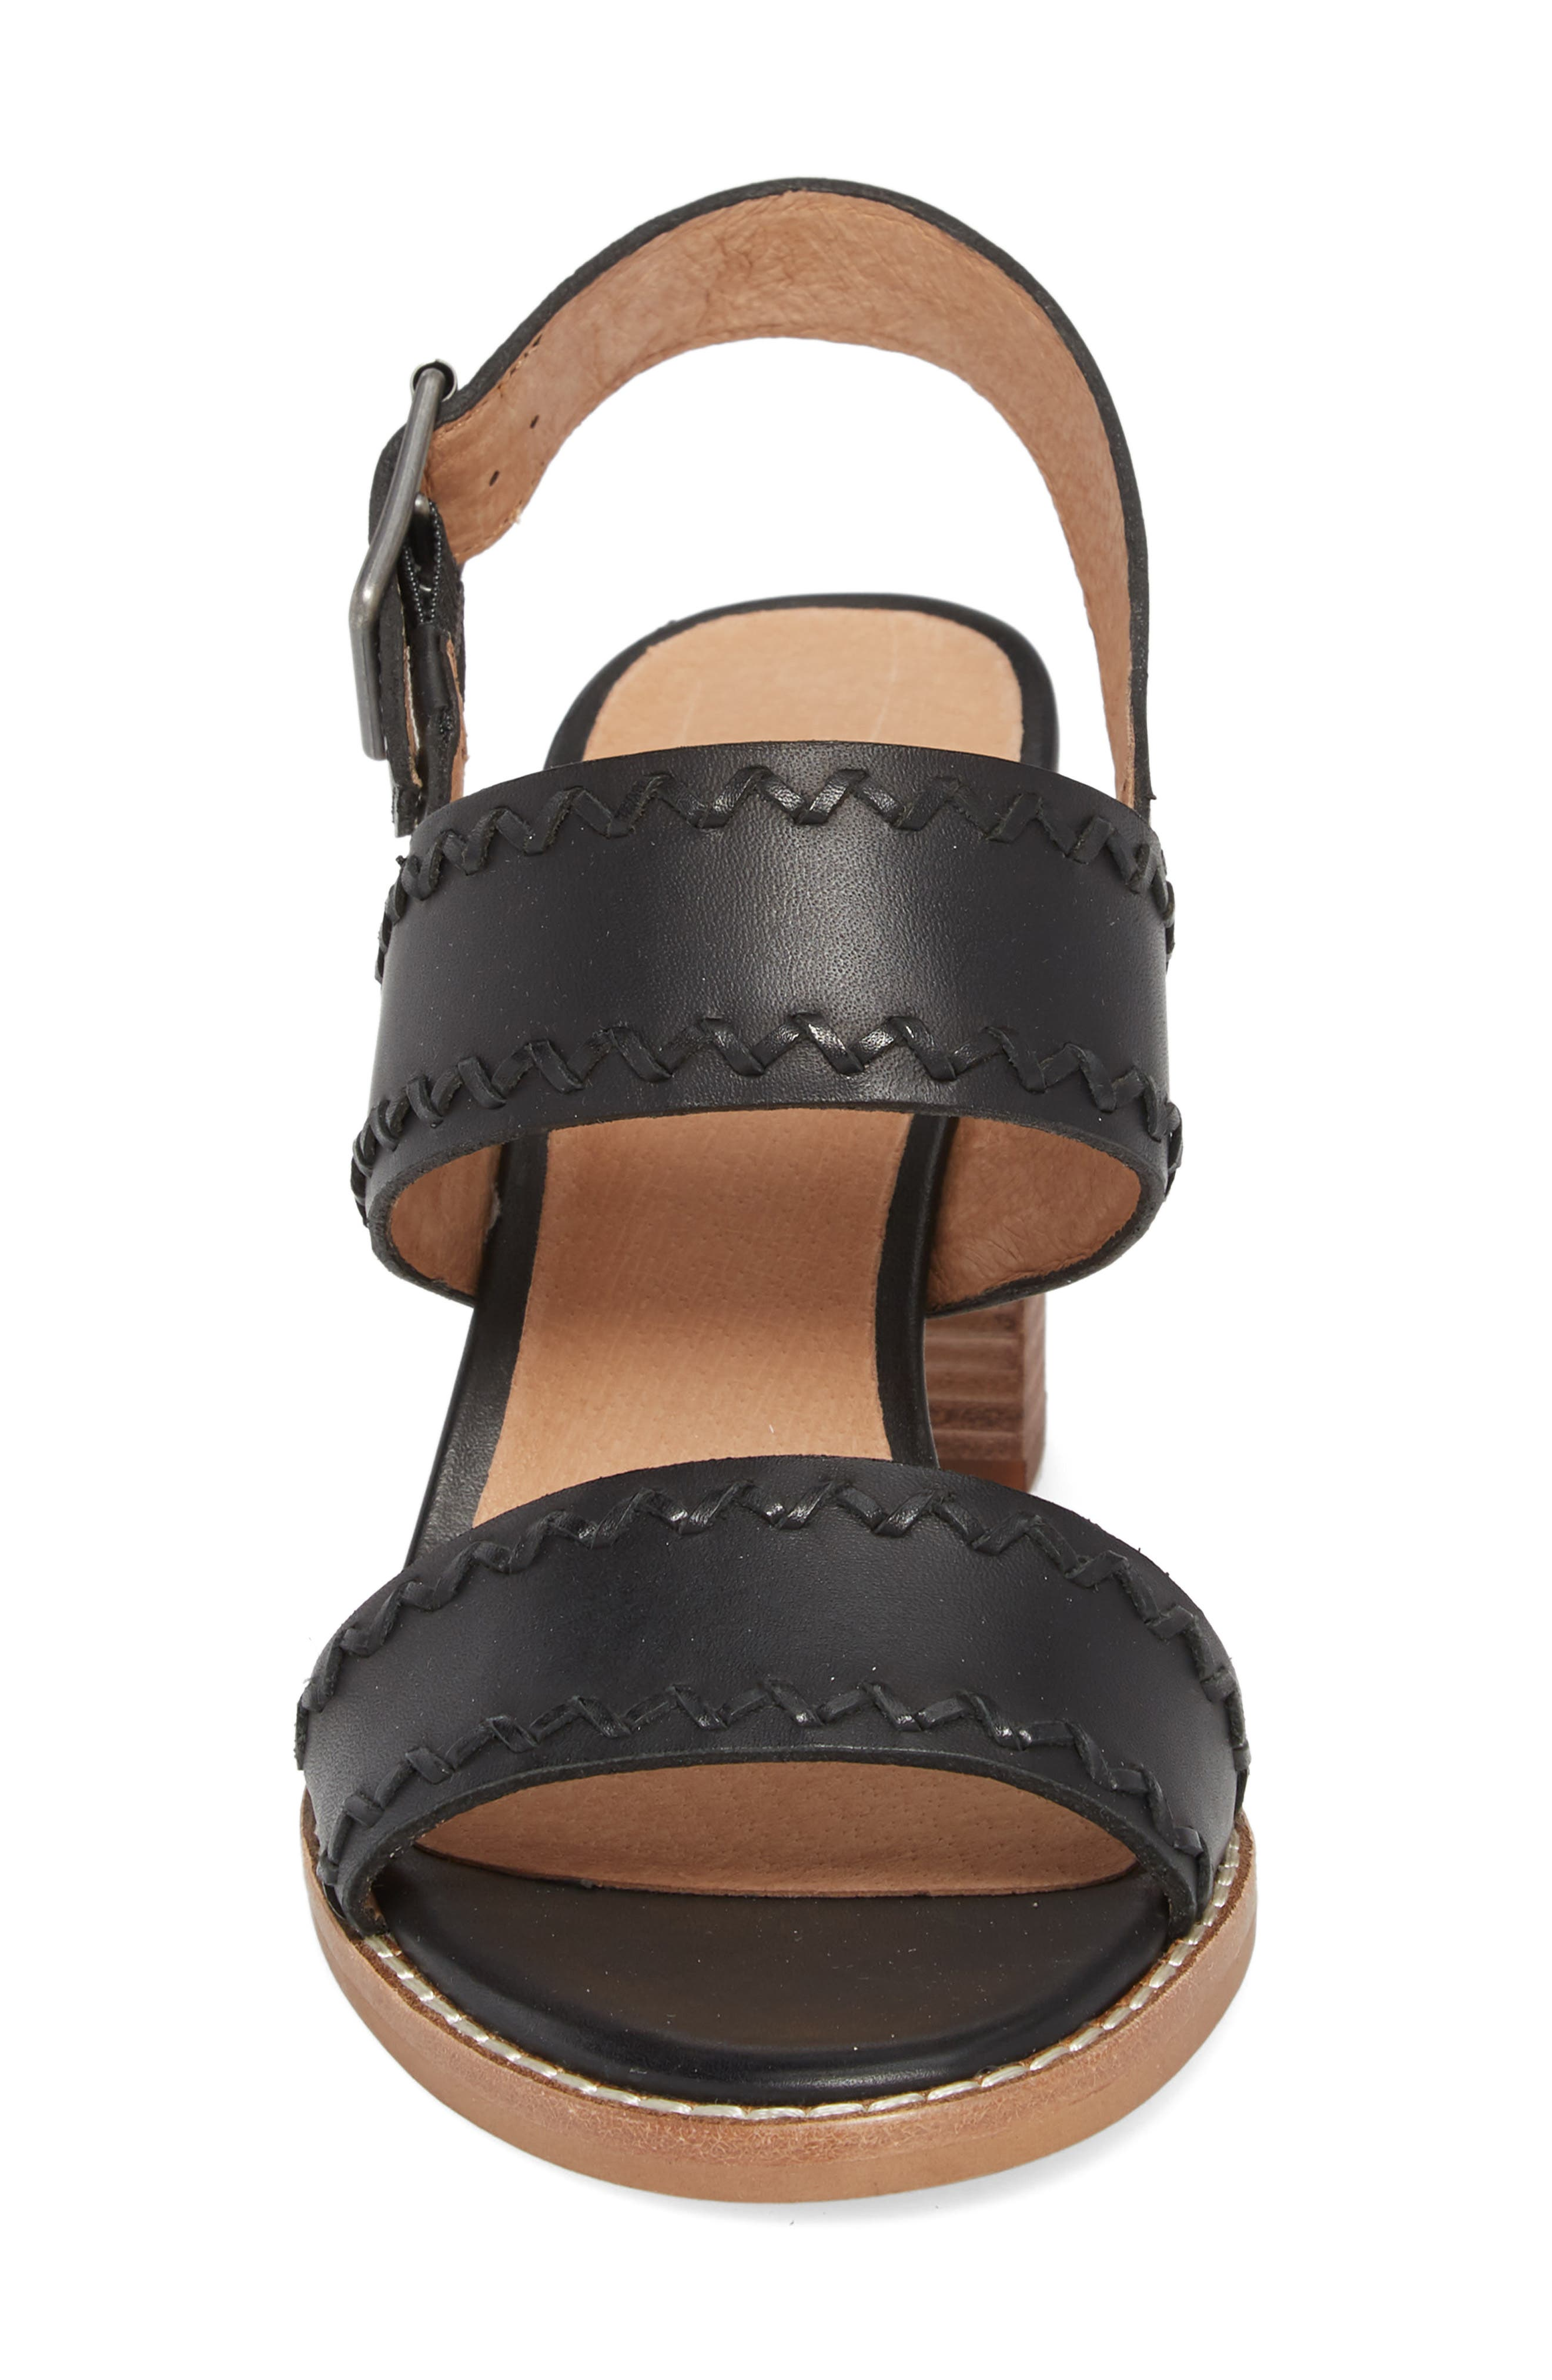 Giana Sandal,                             Alternate thumbnail 4, color,                             True Black Leather